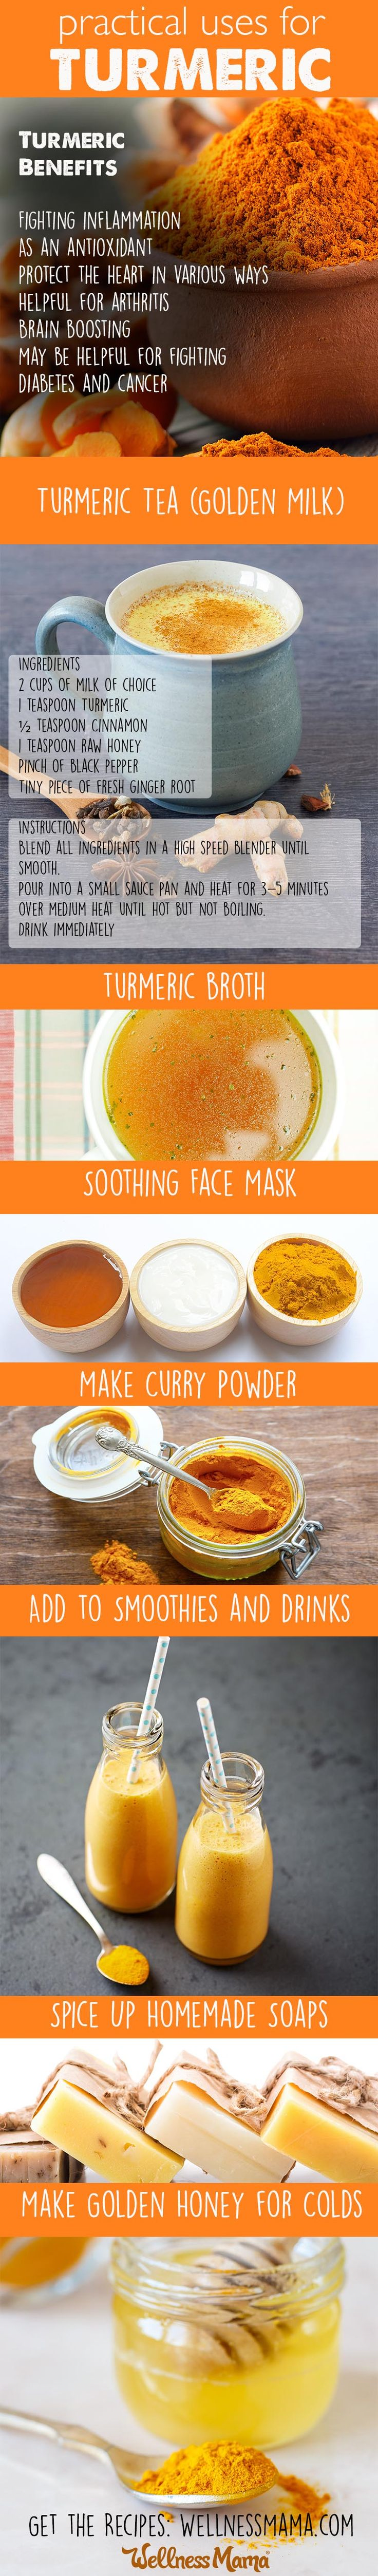 Practical ways to use turmeric in cooking, beauty and remedies. This is why I always keep this around our house, especially in winter.